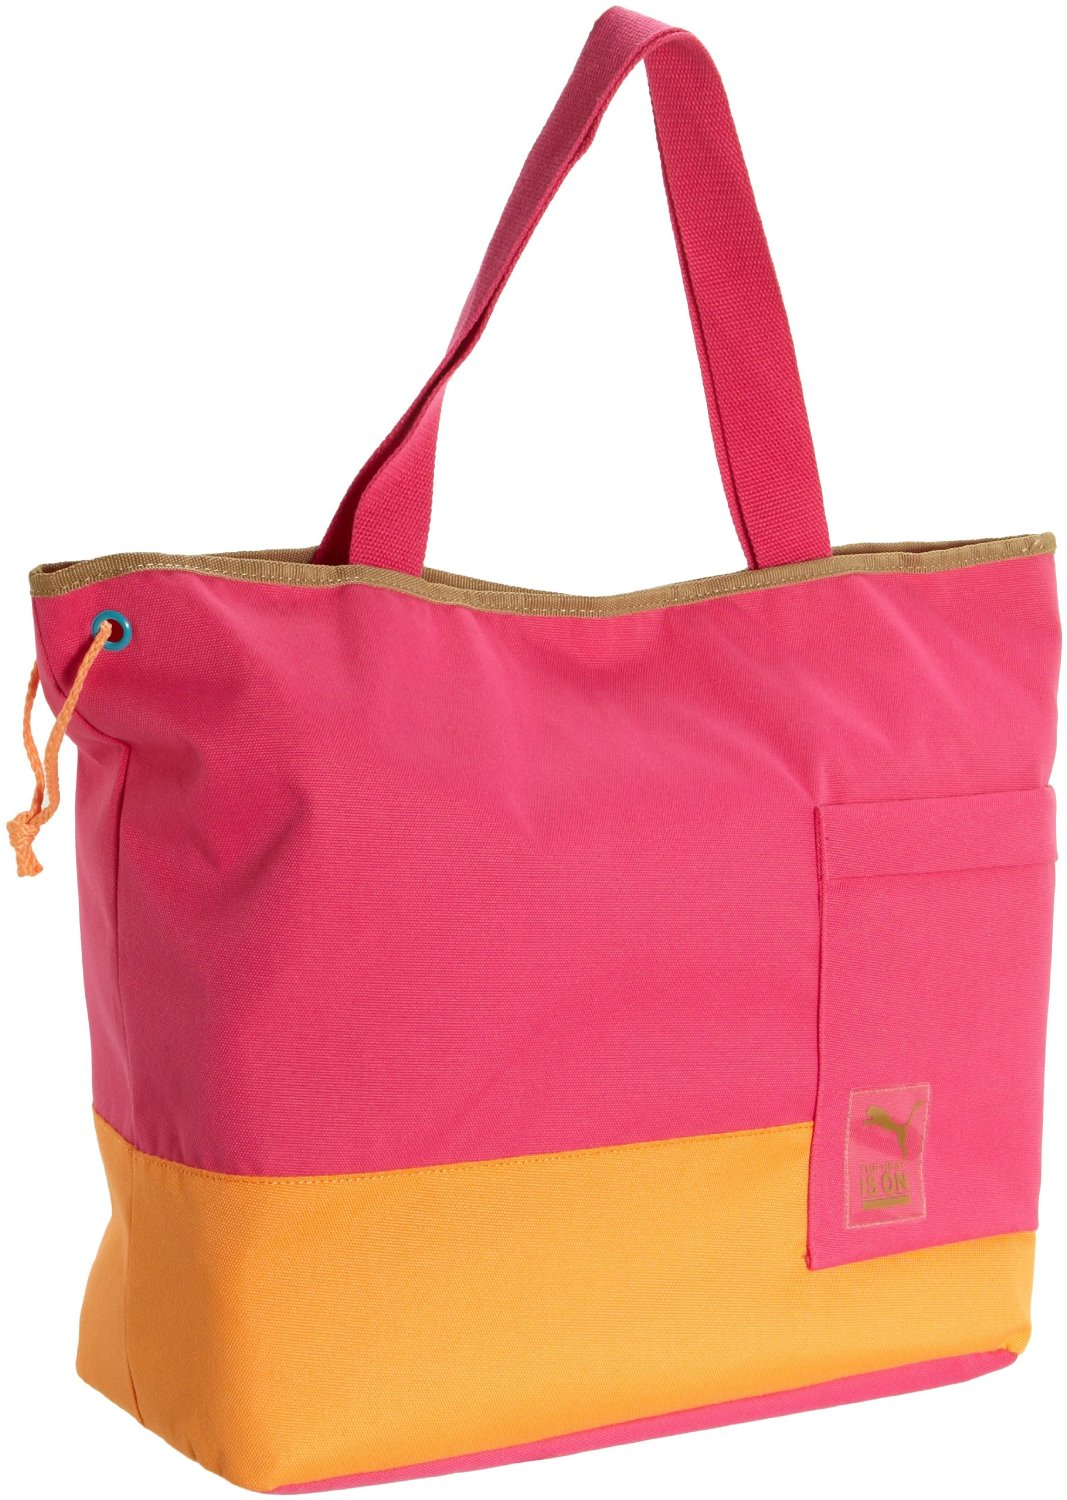 Puma Core Women's Beach Bag